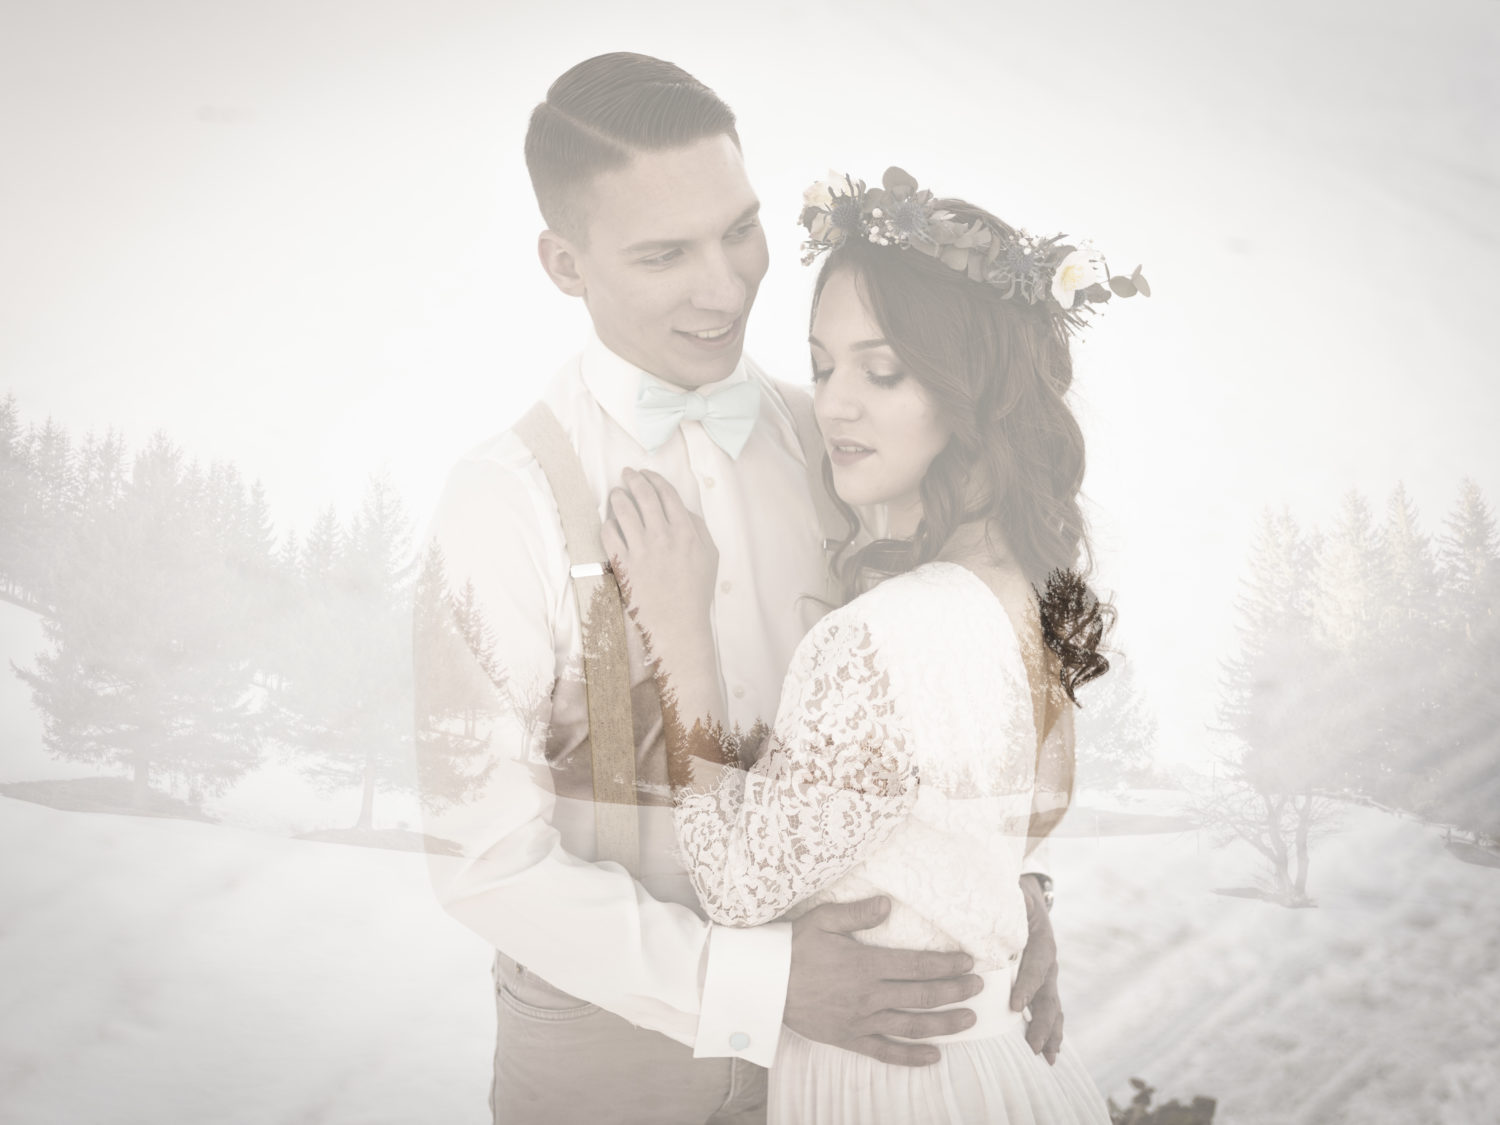 mariage d'hiver Shooting d'inspiration Mariage d'Hiver 21 - Blog Mariage